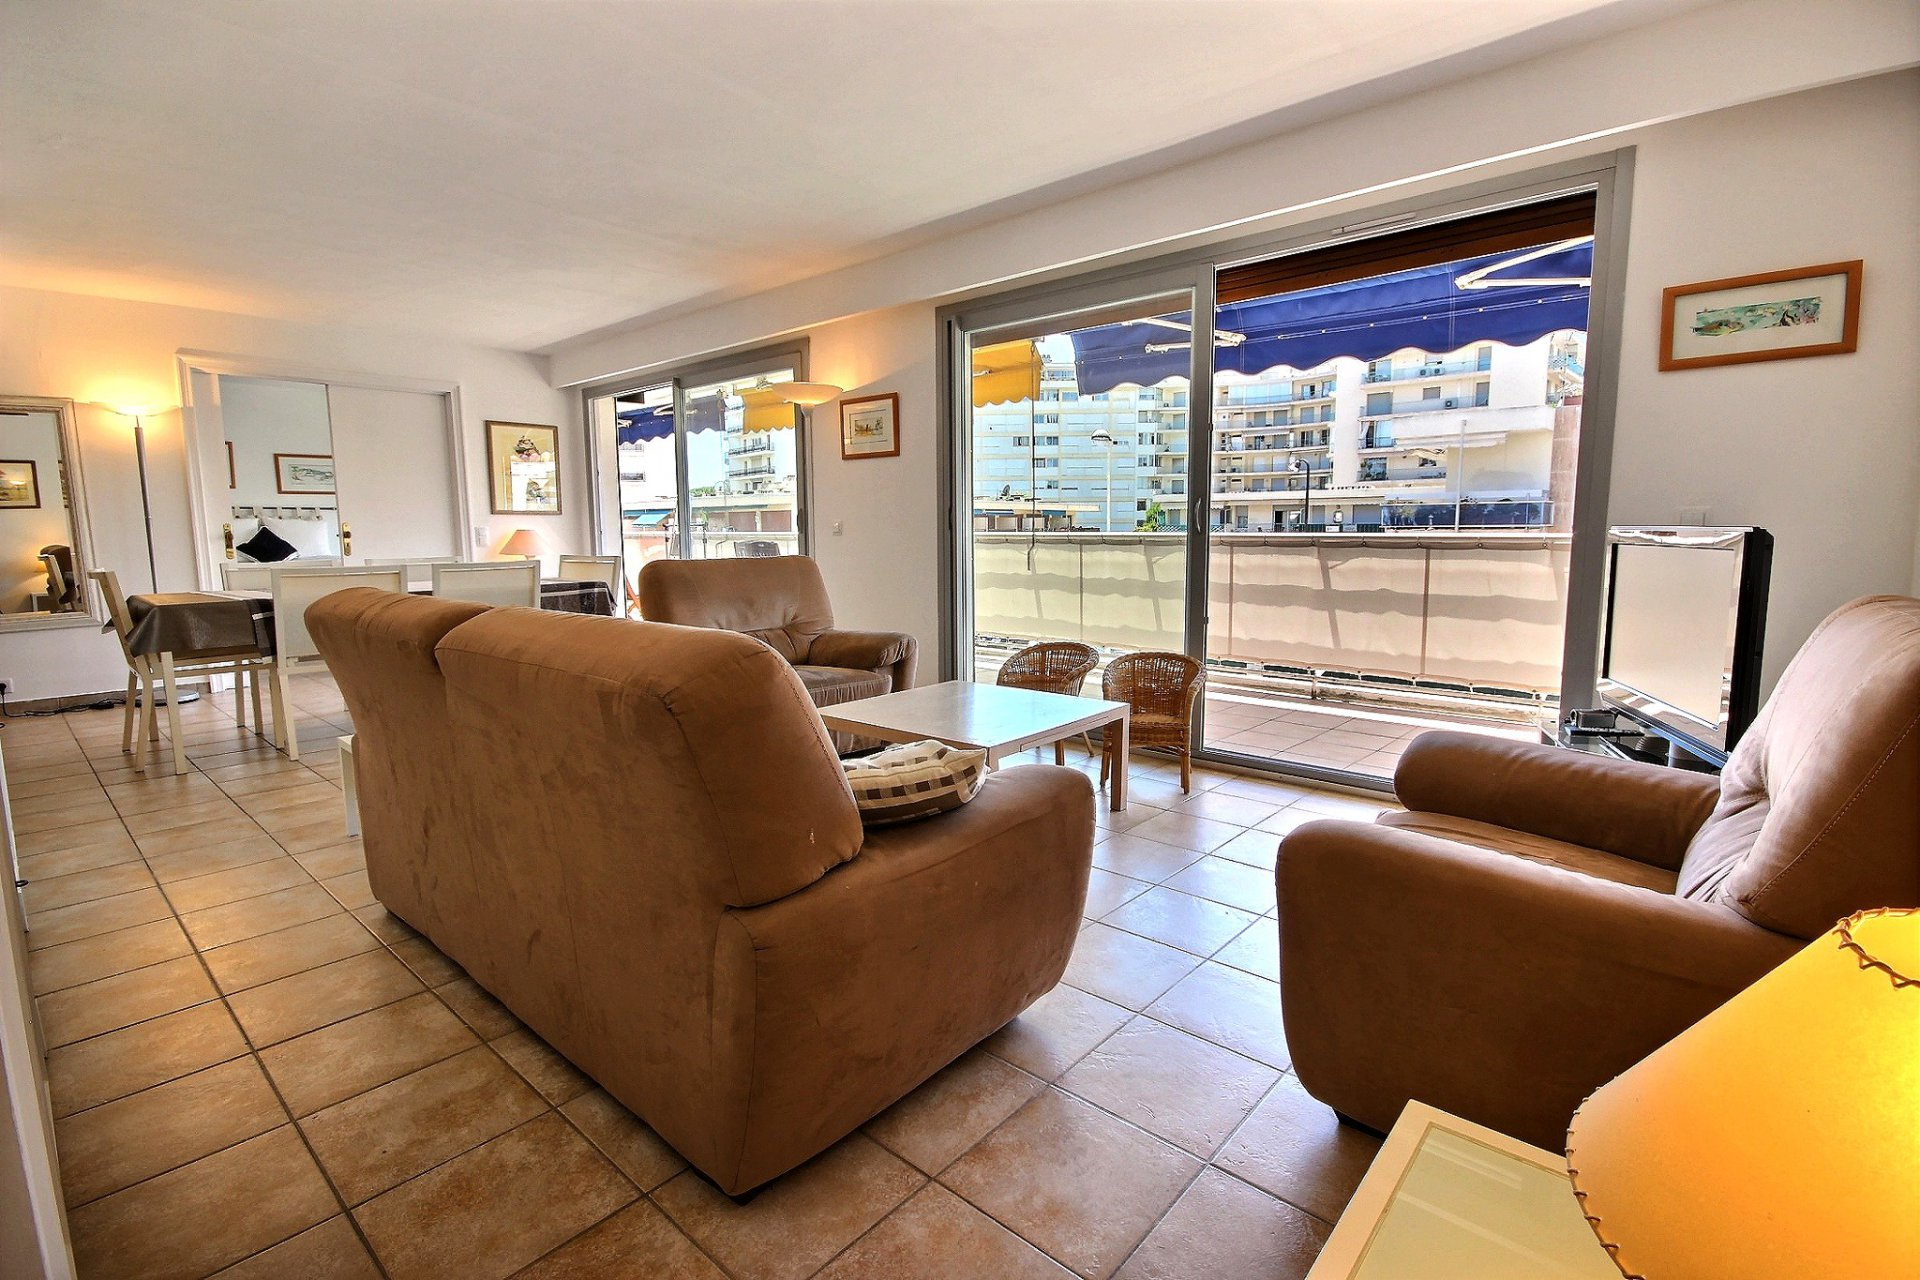 appartement à vendre Cannes Palm Beach terrasse salon